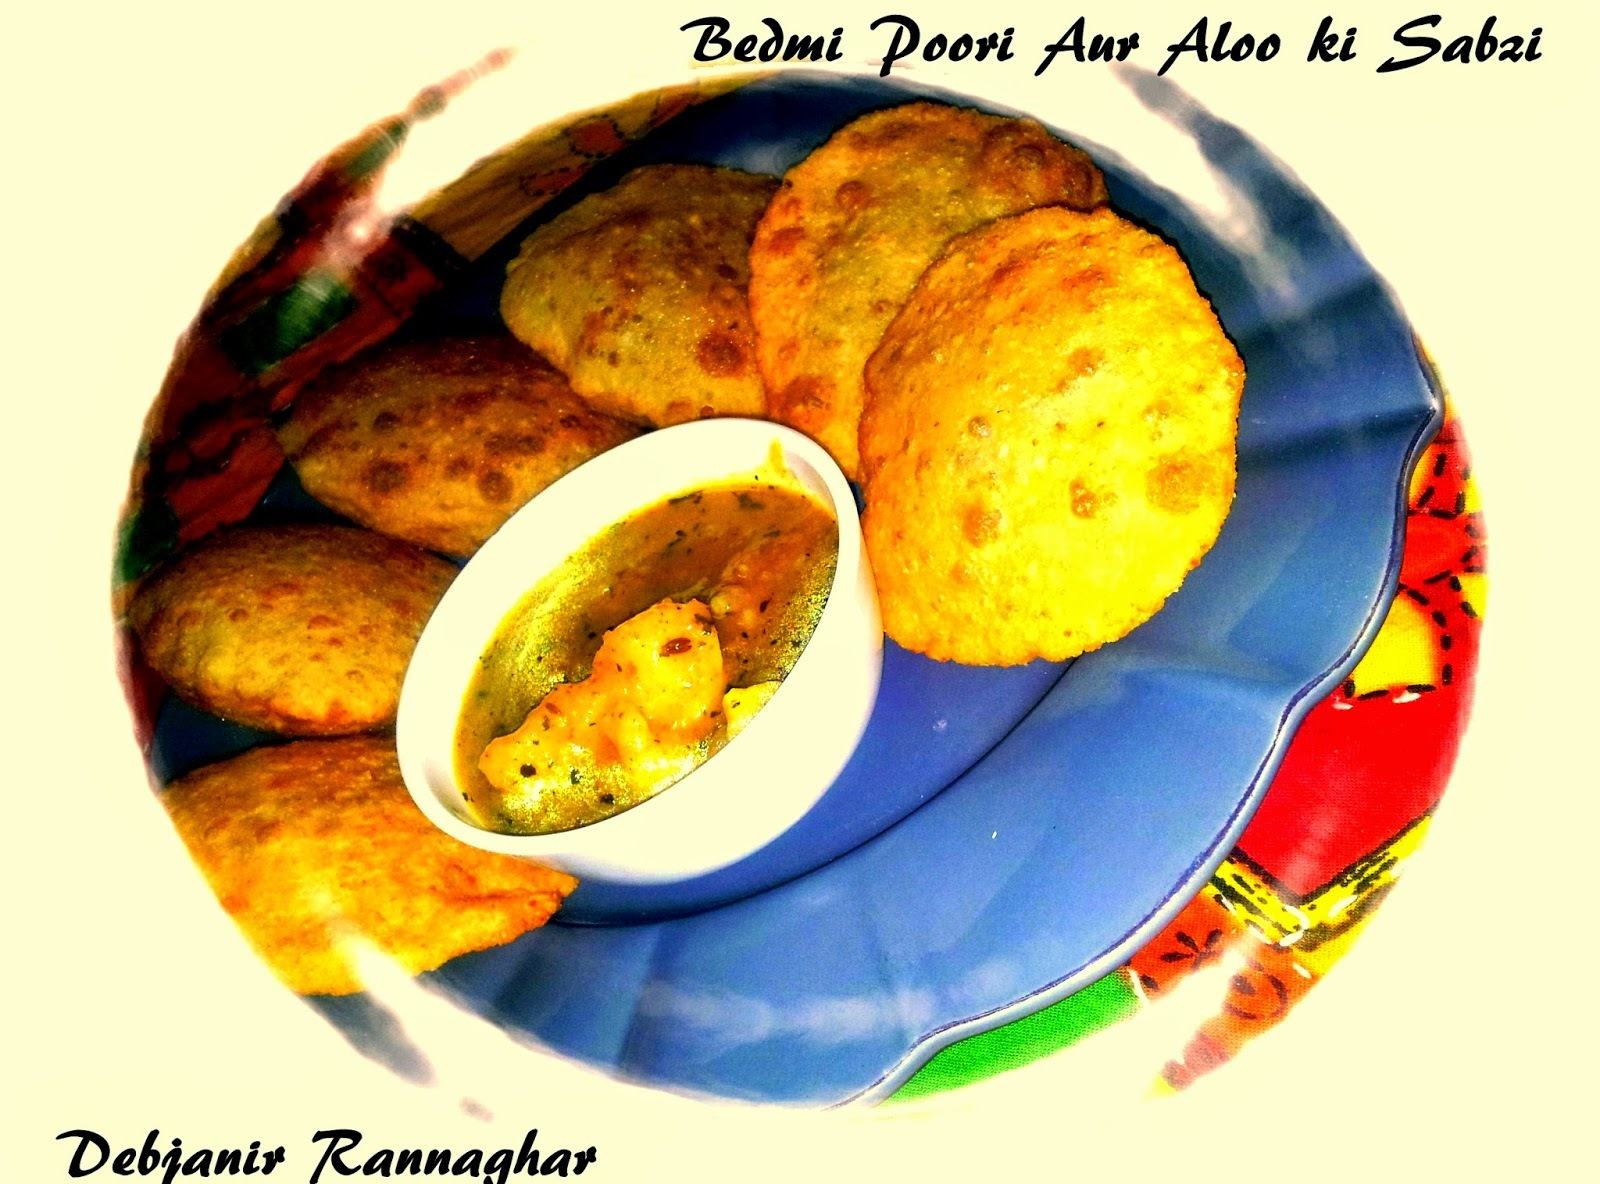 for aloo ki sabzi with poori